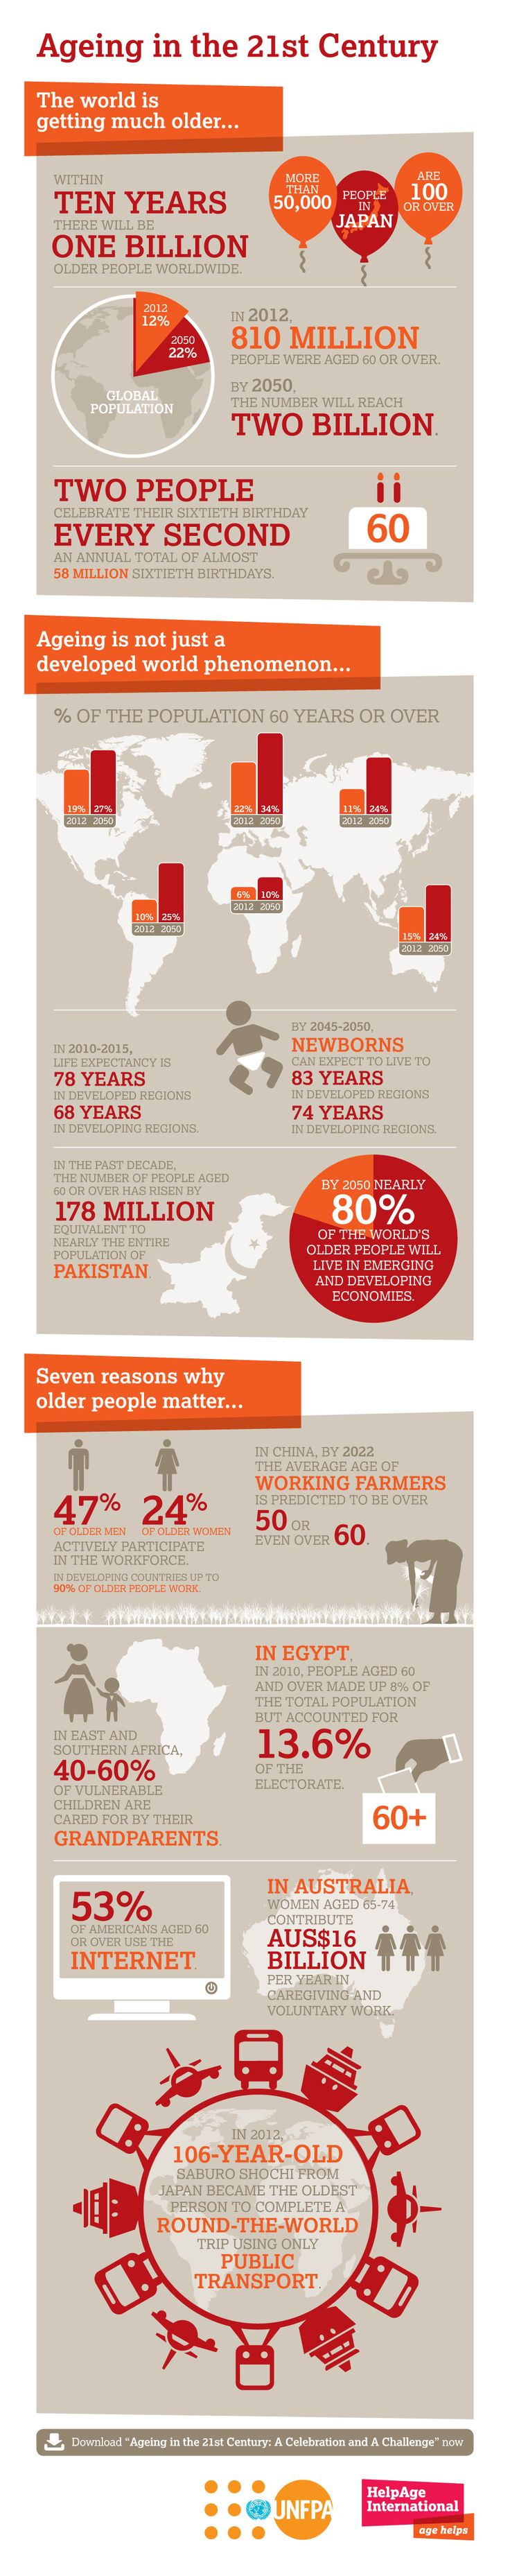 Aging in the 21st Century: Infographic   Aging data   HelpAge USA